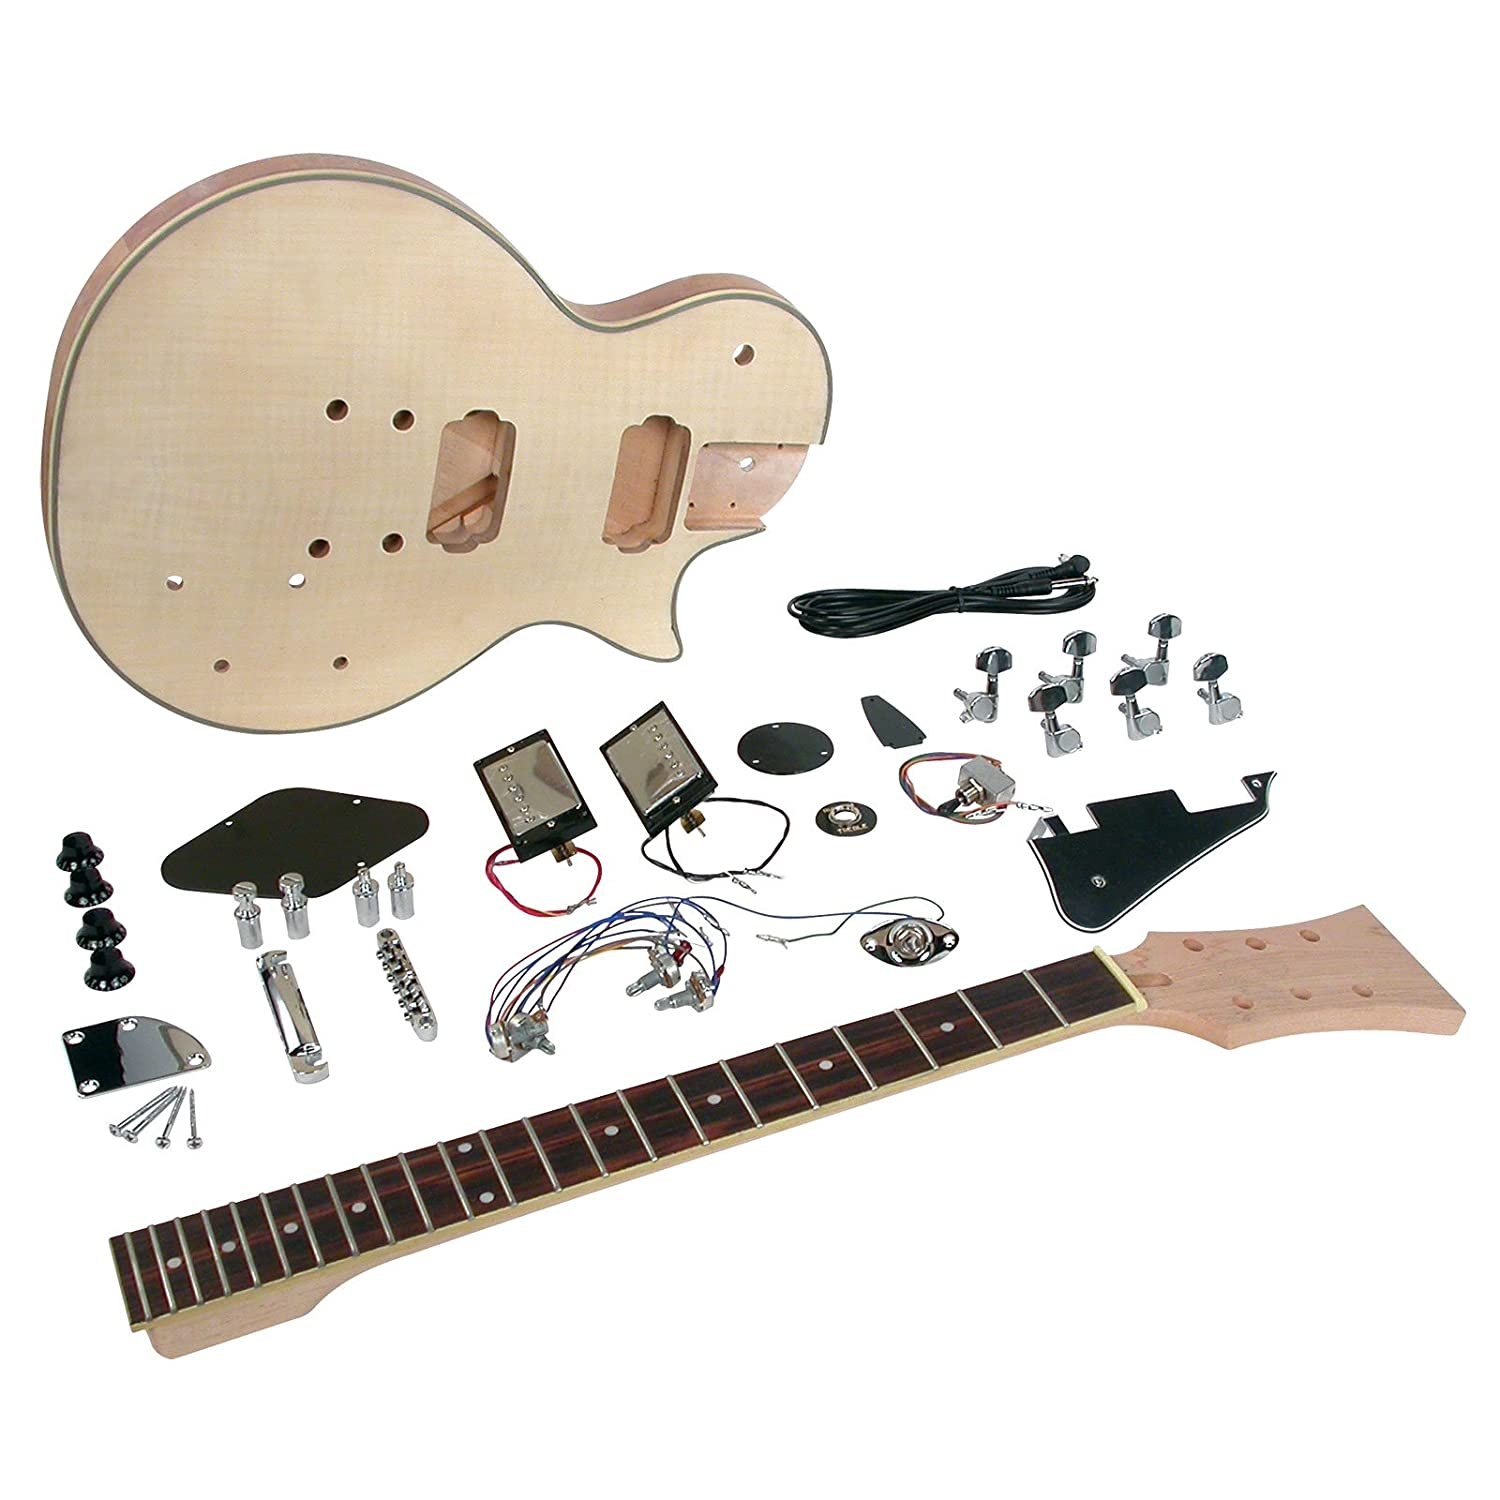 saga lc 10 deluxe electric guitar kit single cutaway